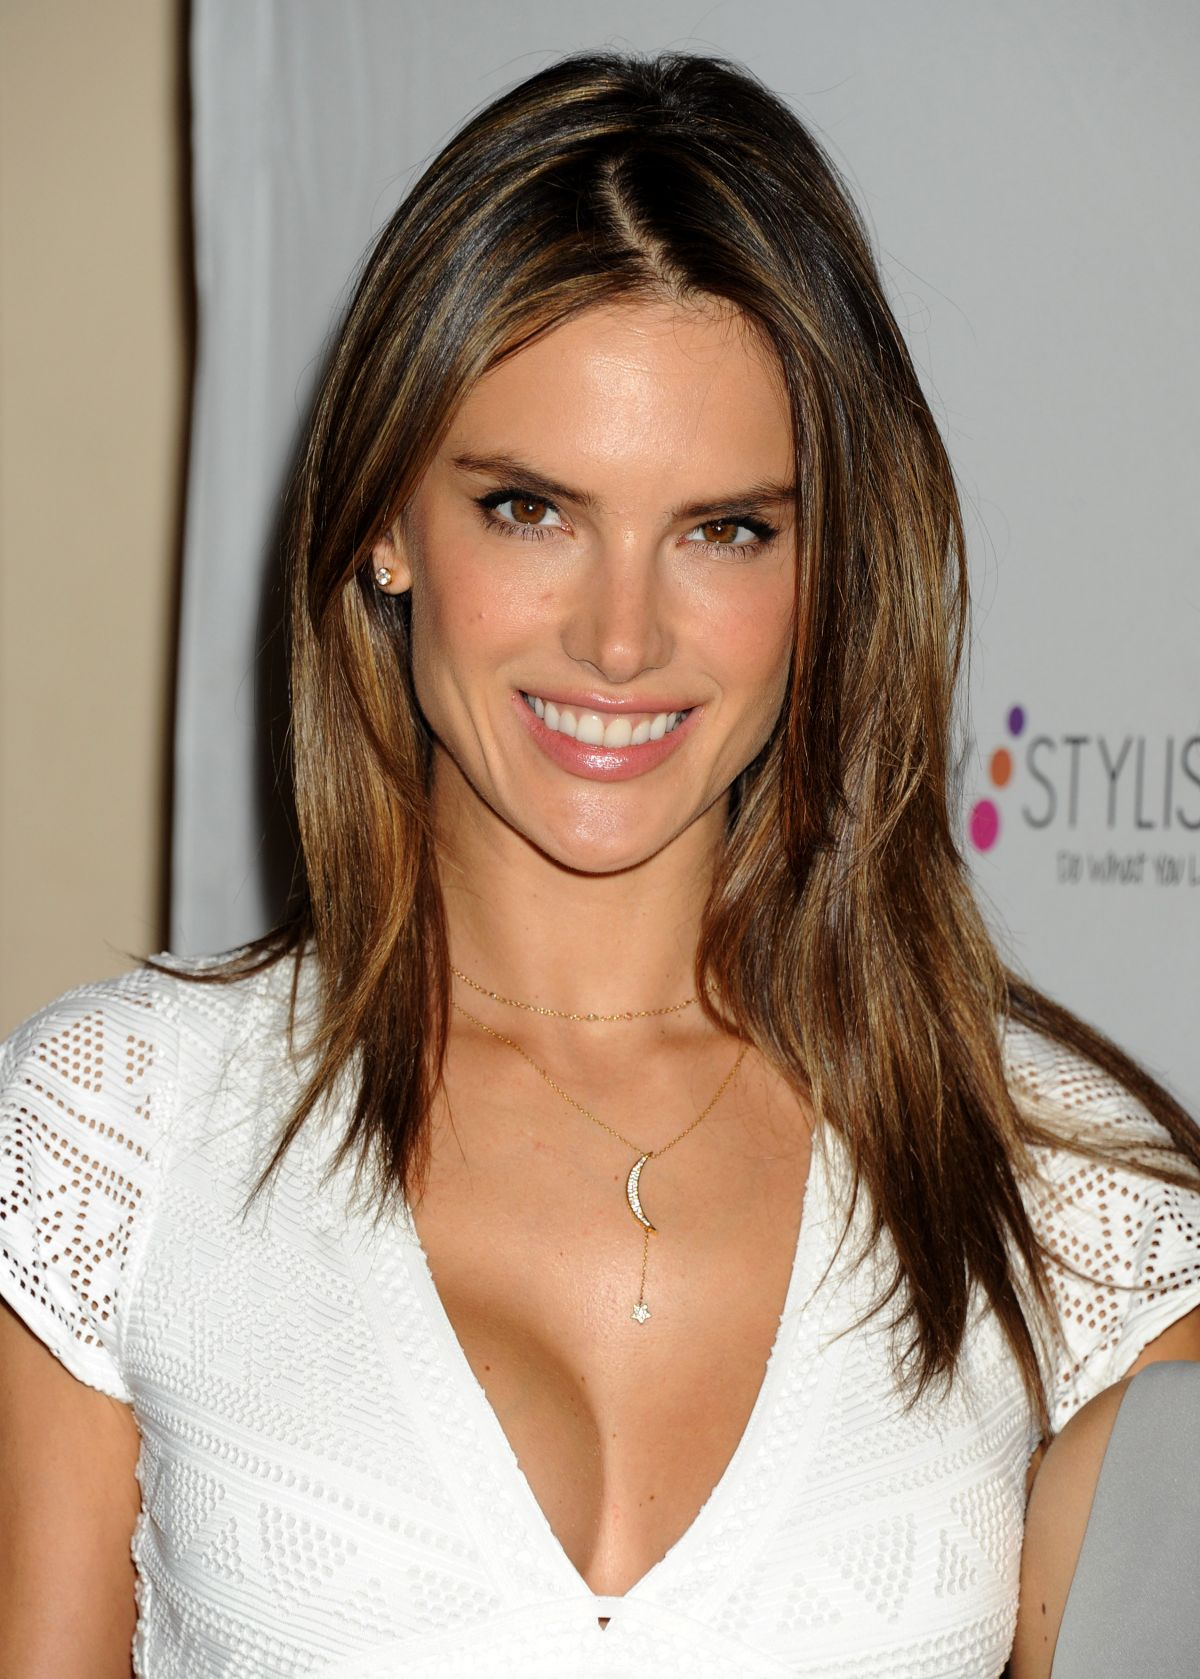 ALESSANDRA AMBROSIO at Simple Stylist Do What You Love! Conference in ...